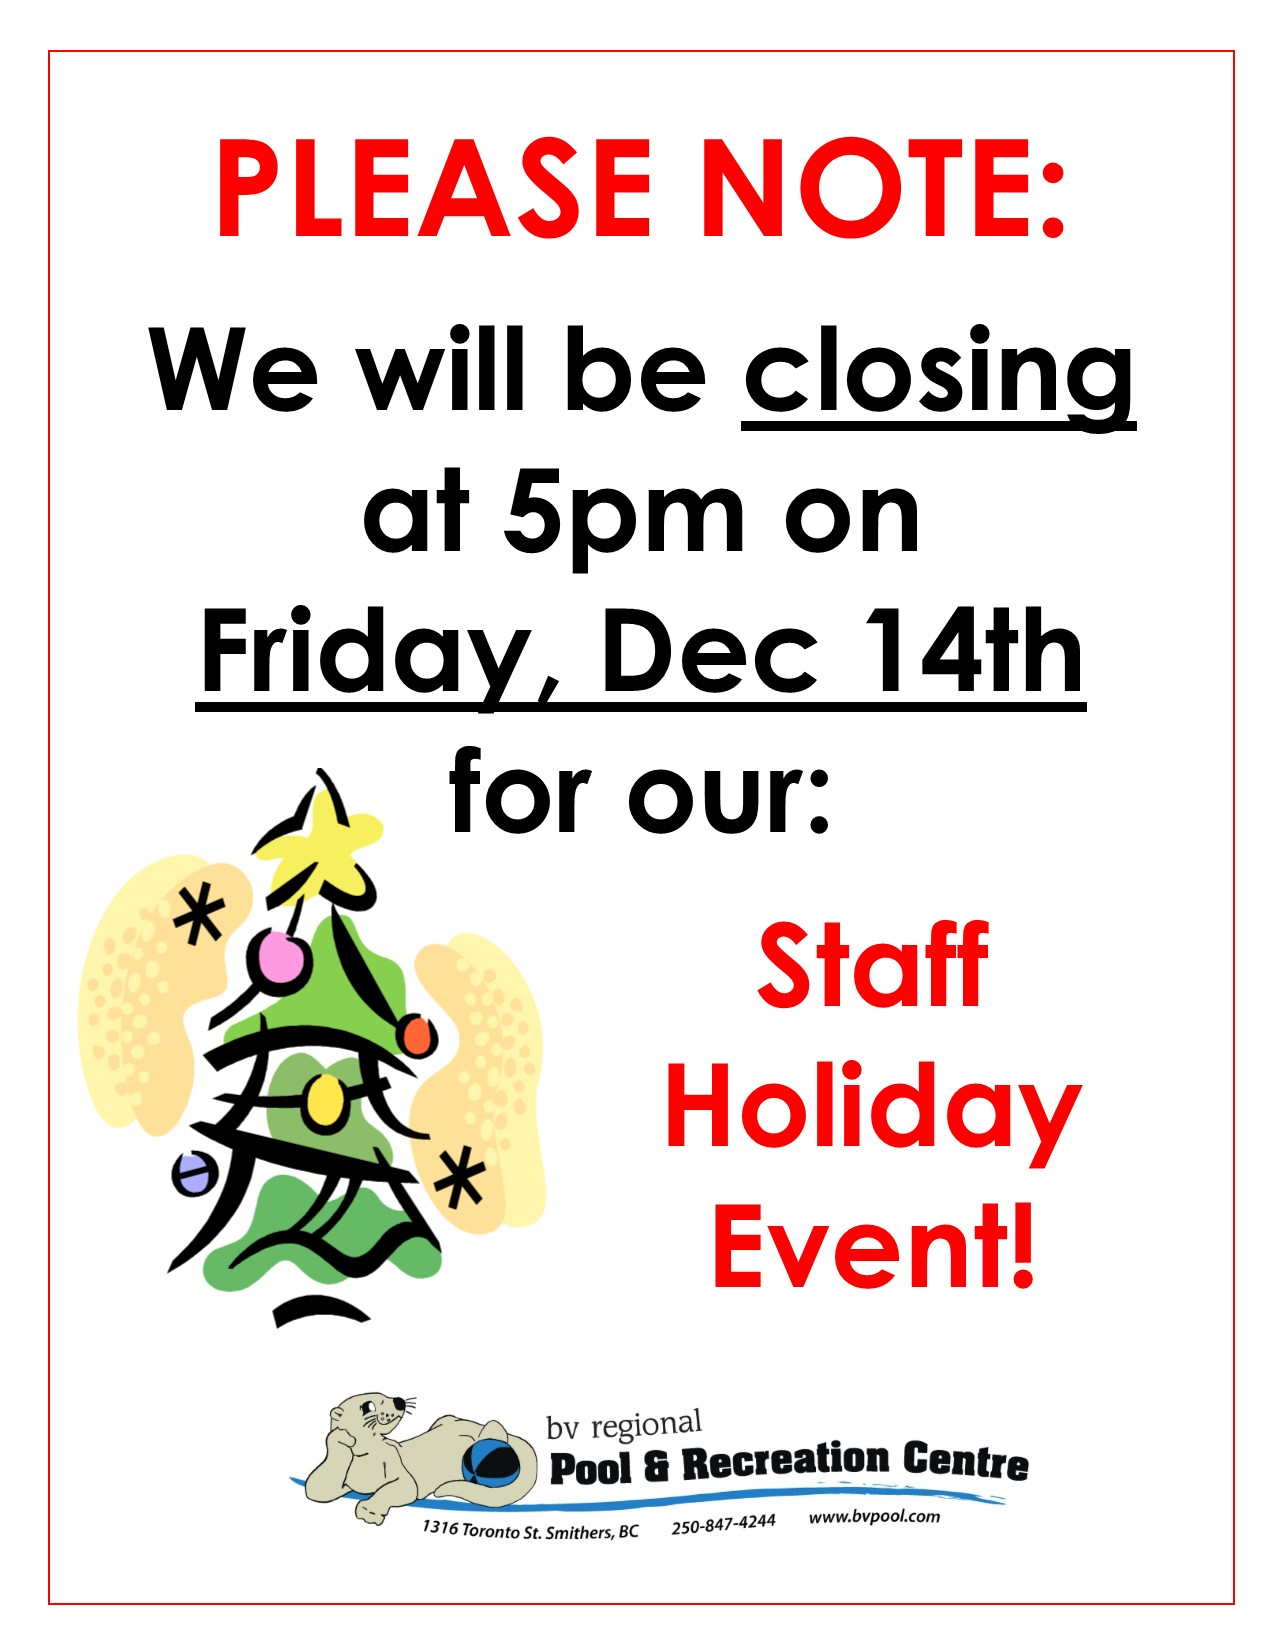 Staff Christmas Party Closure